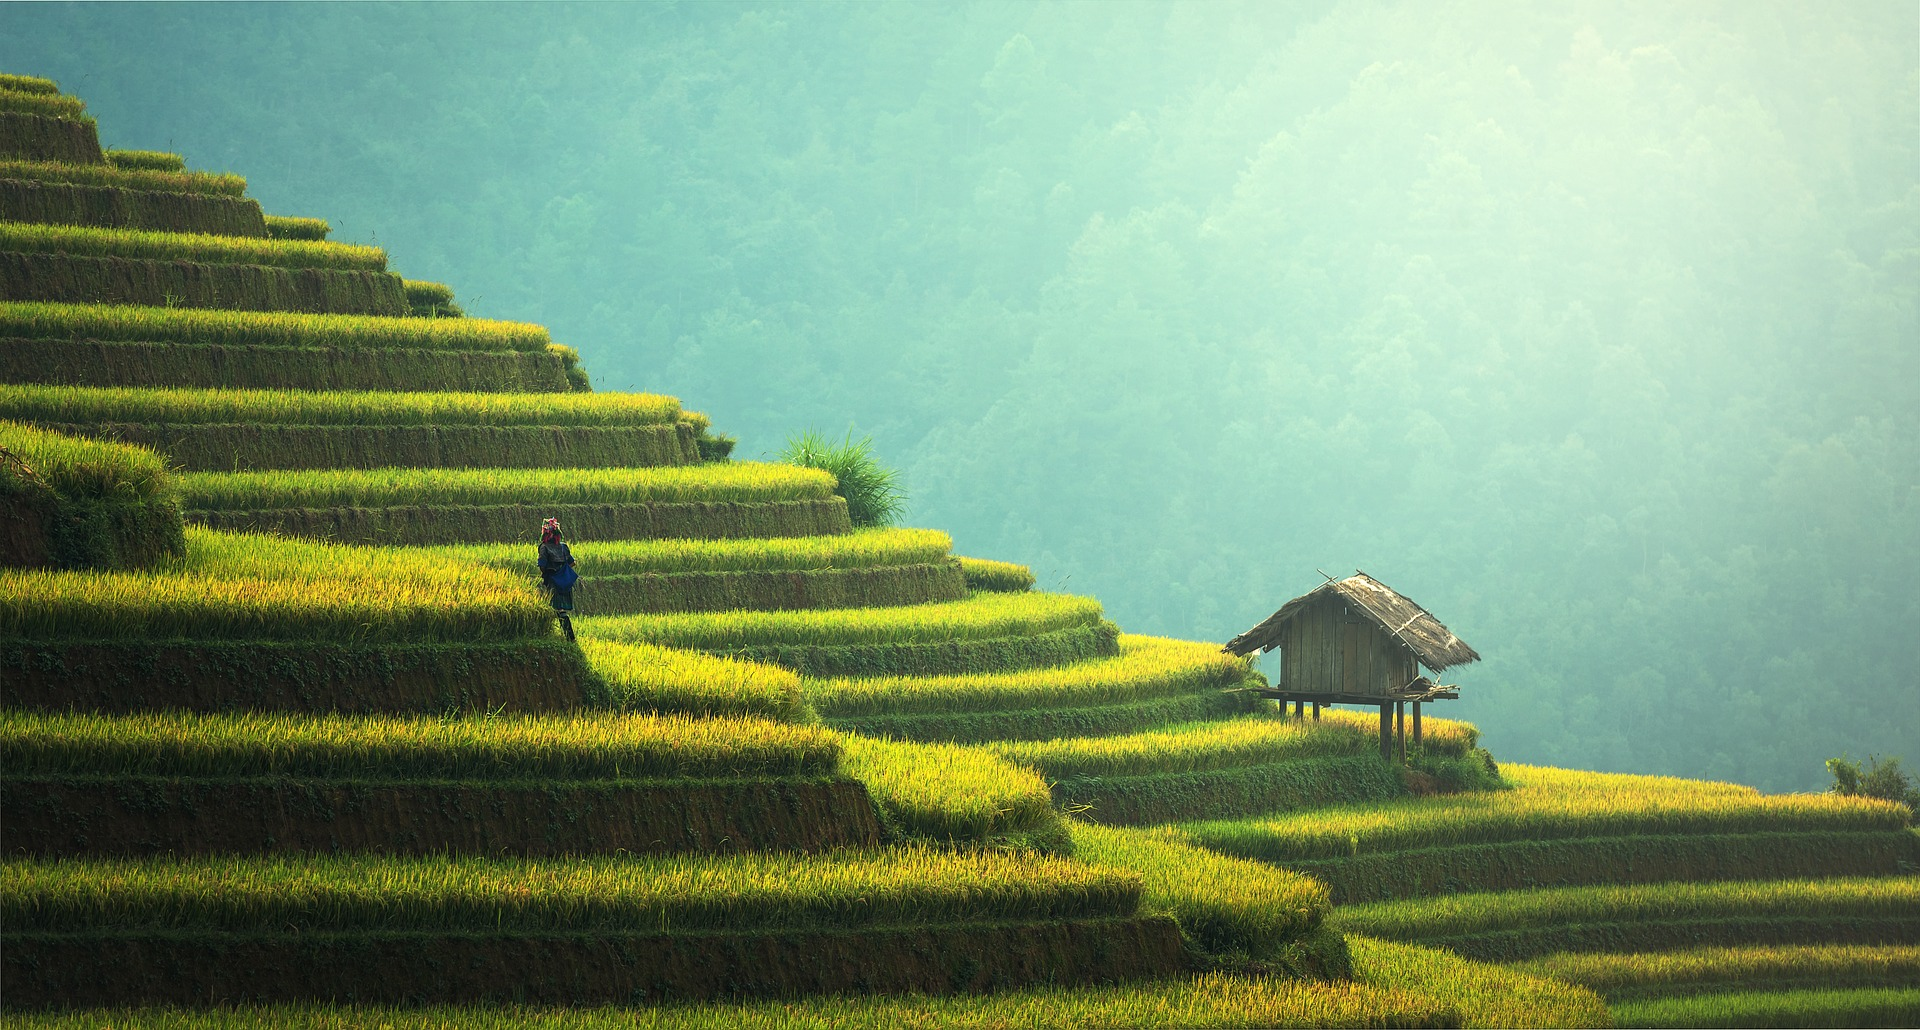 a slope layered with rice fields